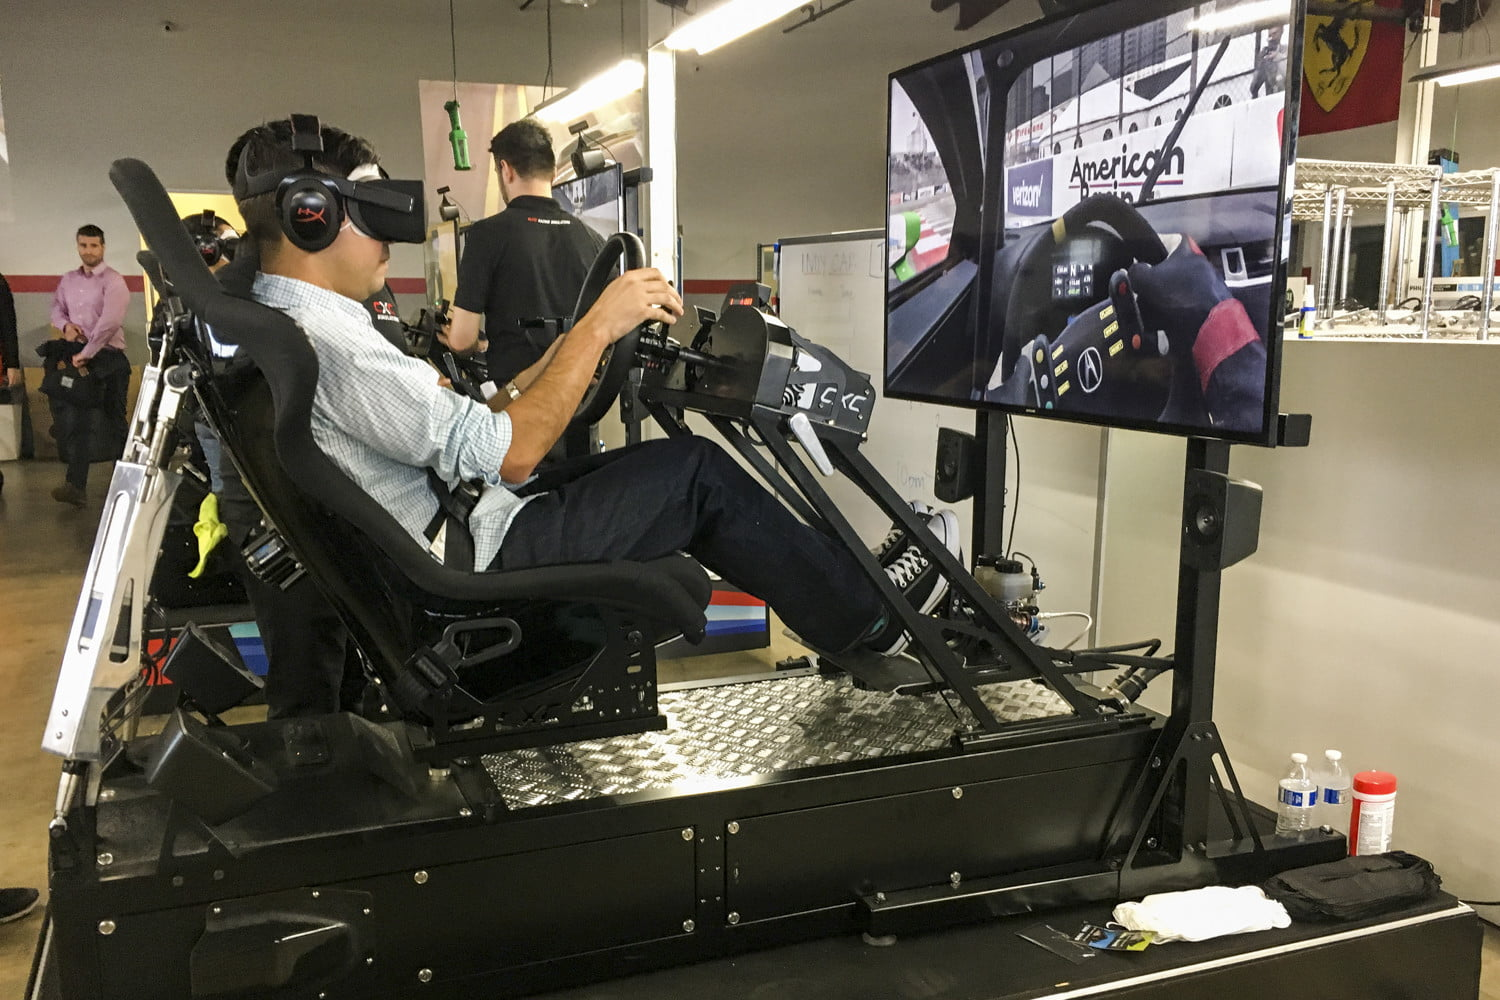 we played project cars 2 in a gigantic racing simulator projectcars2 testdrive 397 12